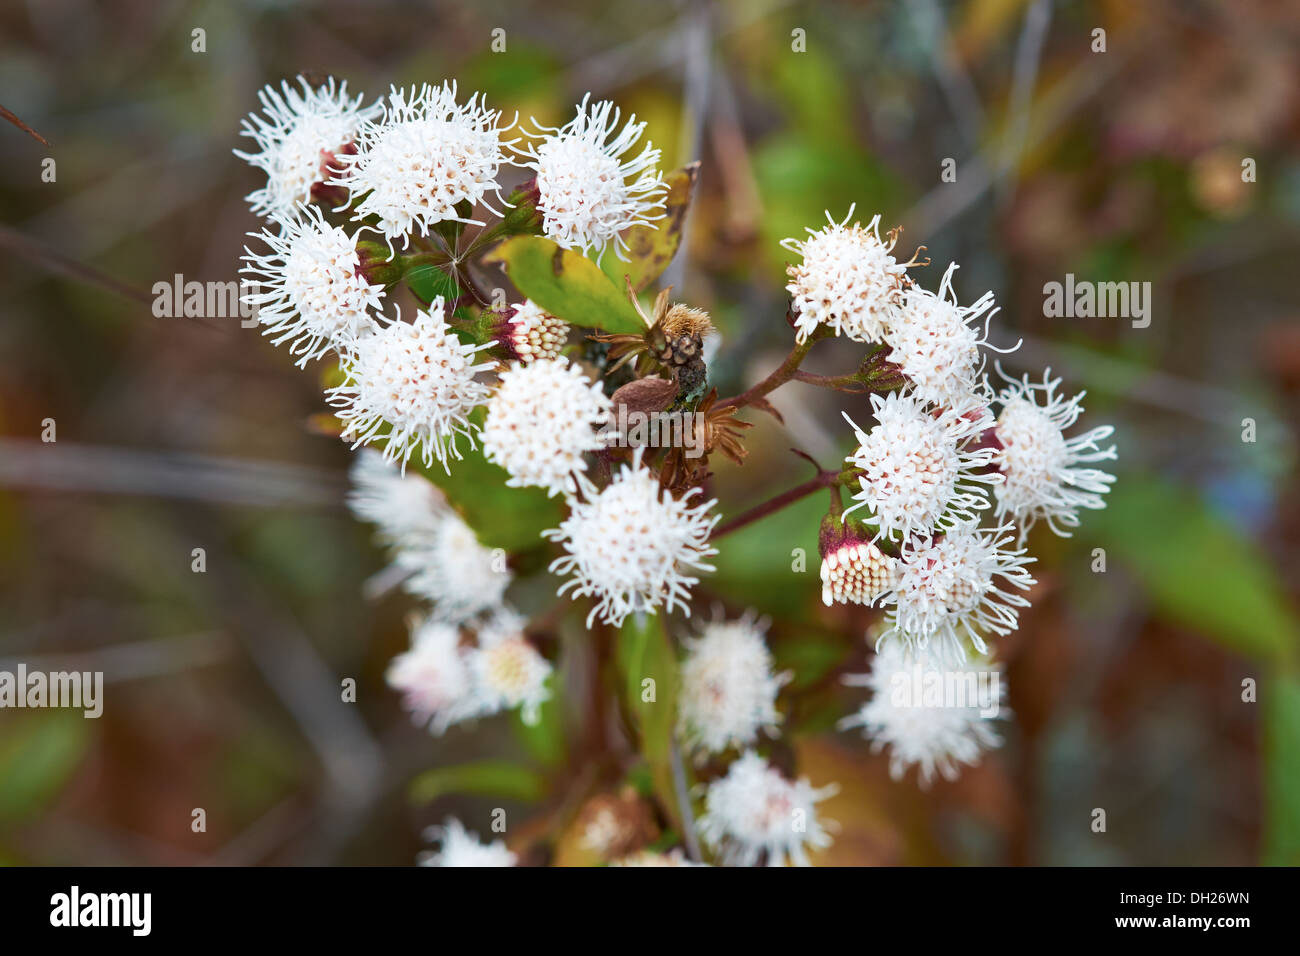 White mountain flowers in the andes peru south america stock photo white mountain flowers in the andes peru south america mightylinksfo